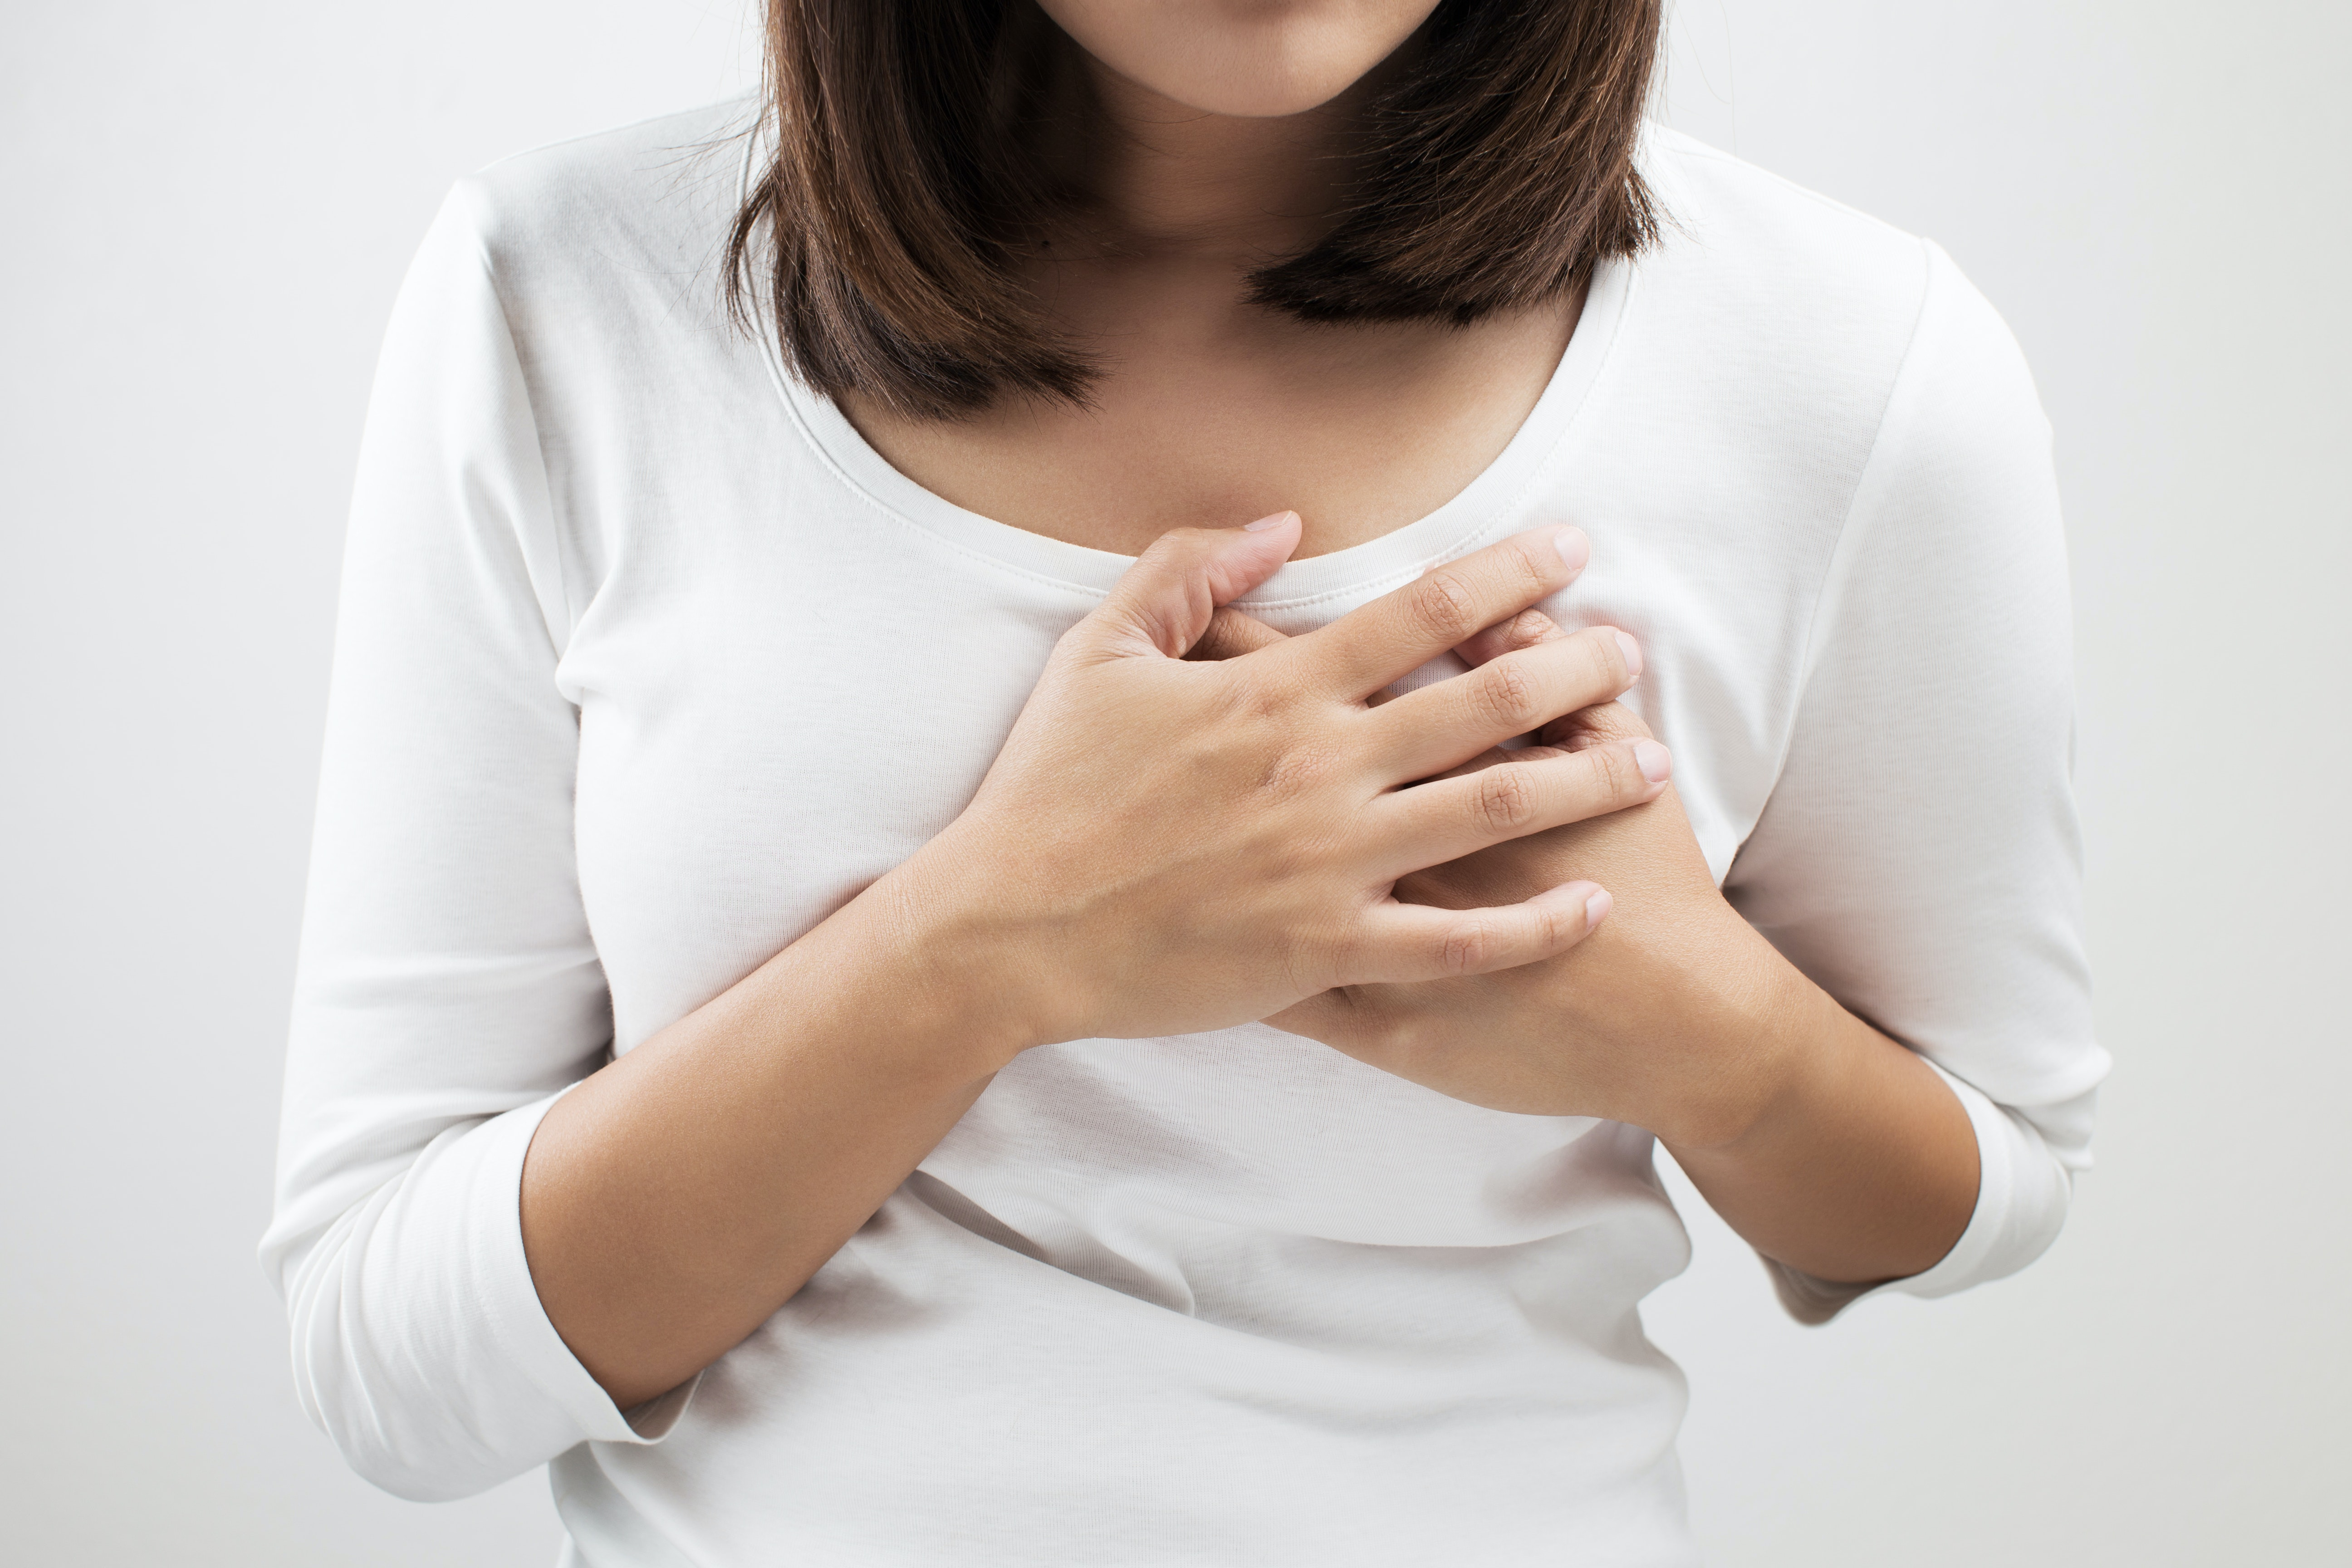 An image depicting a person suffering from swollen breasts symptoms